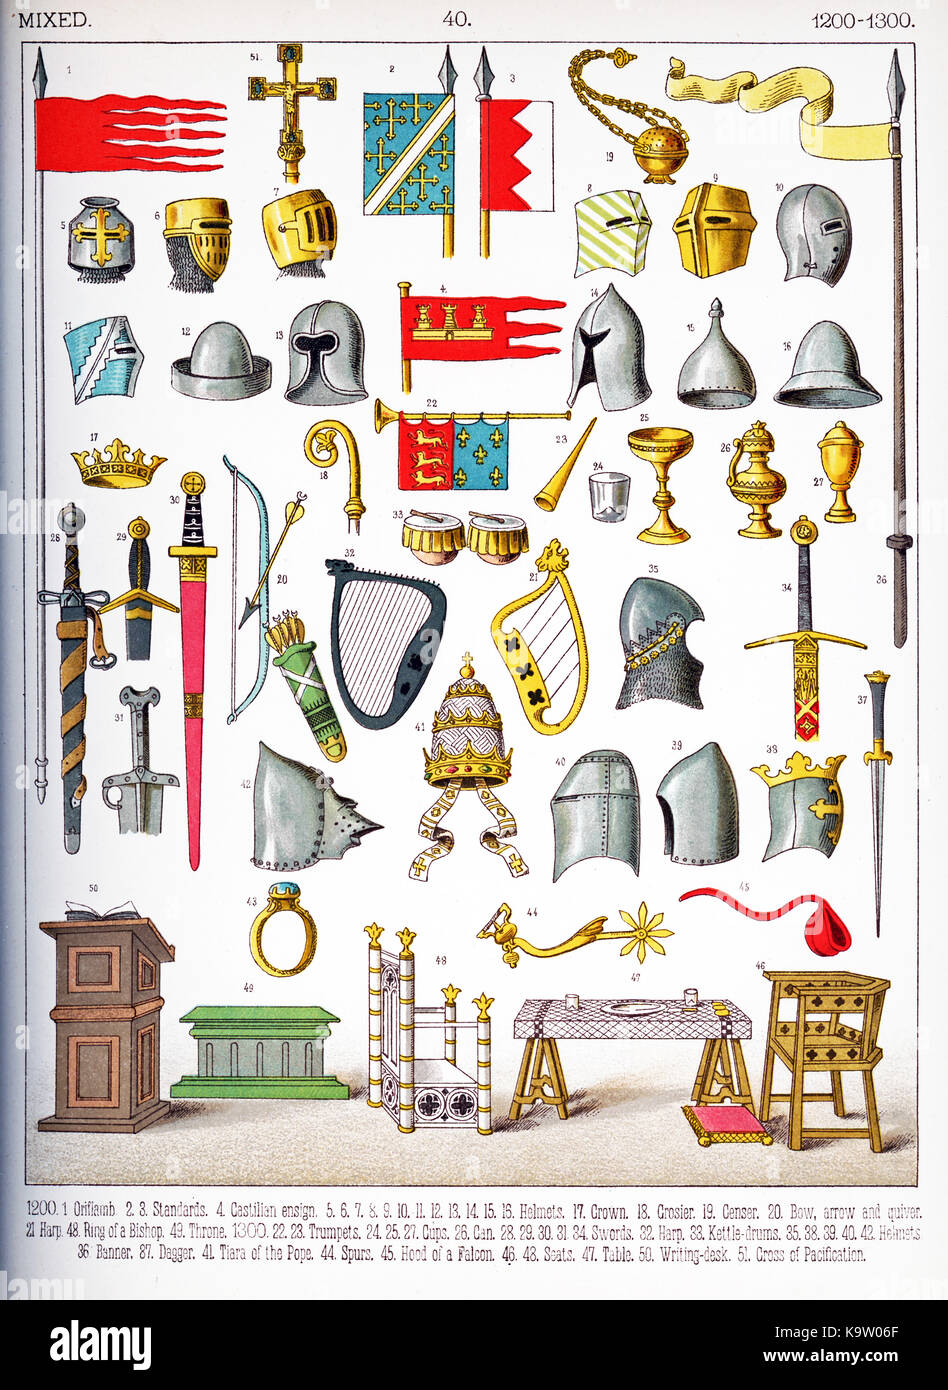 The artifacts here date to Europe between 1200 to 1300. They are, according to the numbers—FROM 1200: 1. oriflamb, Stock Photo